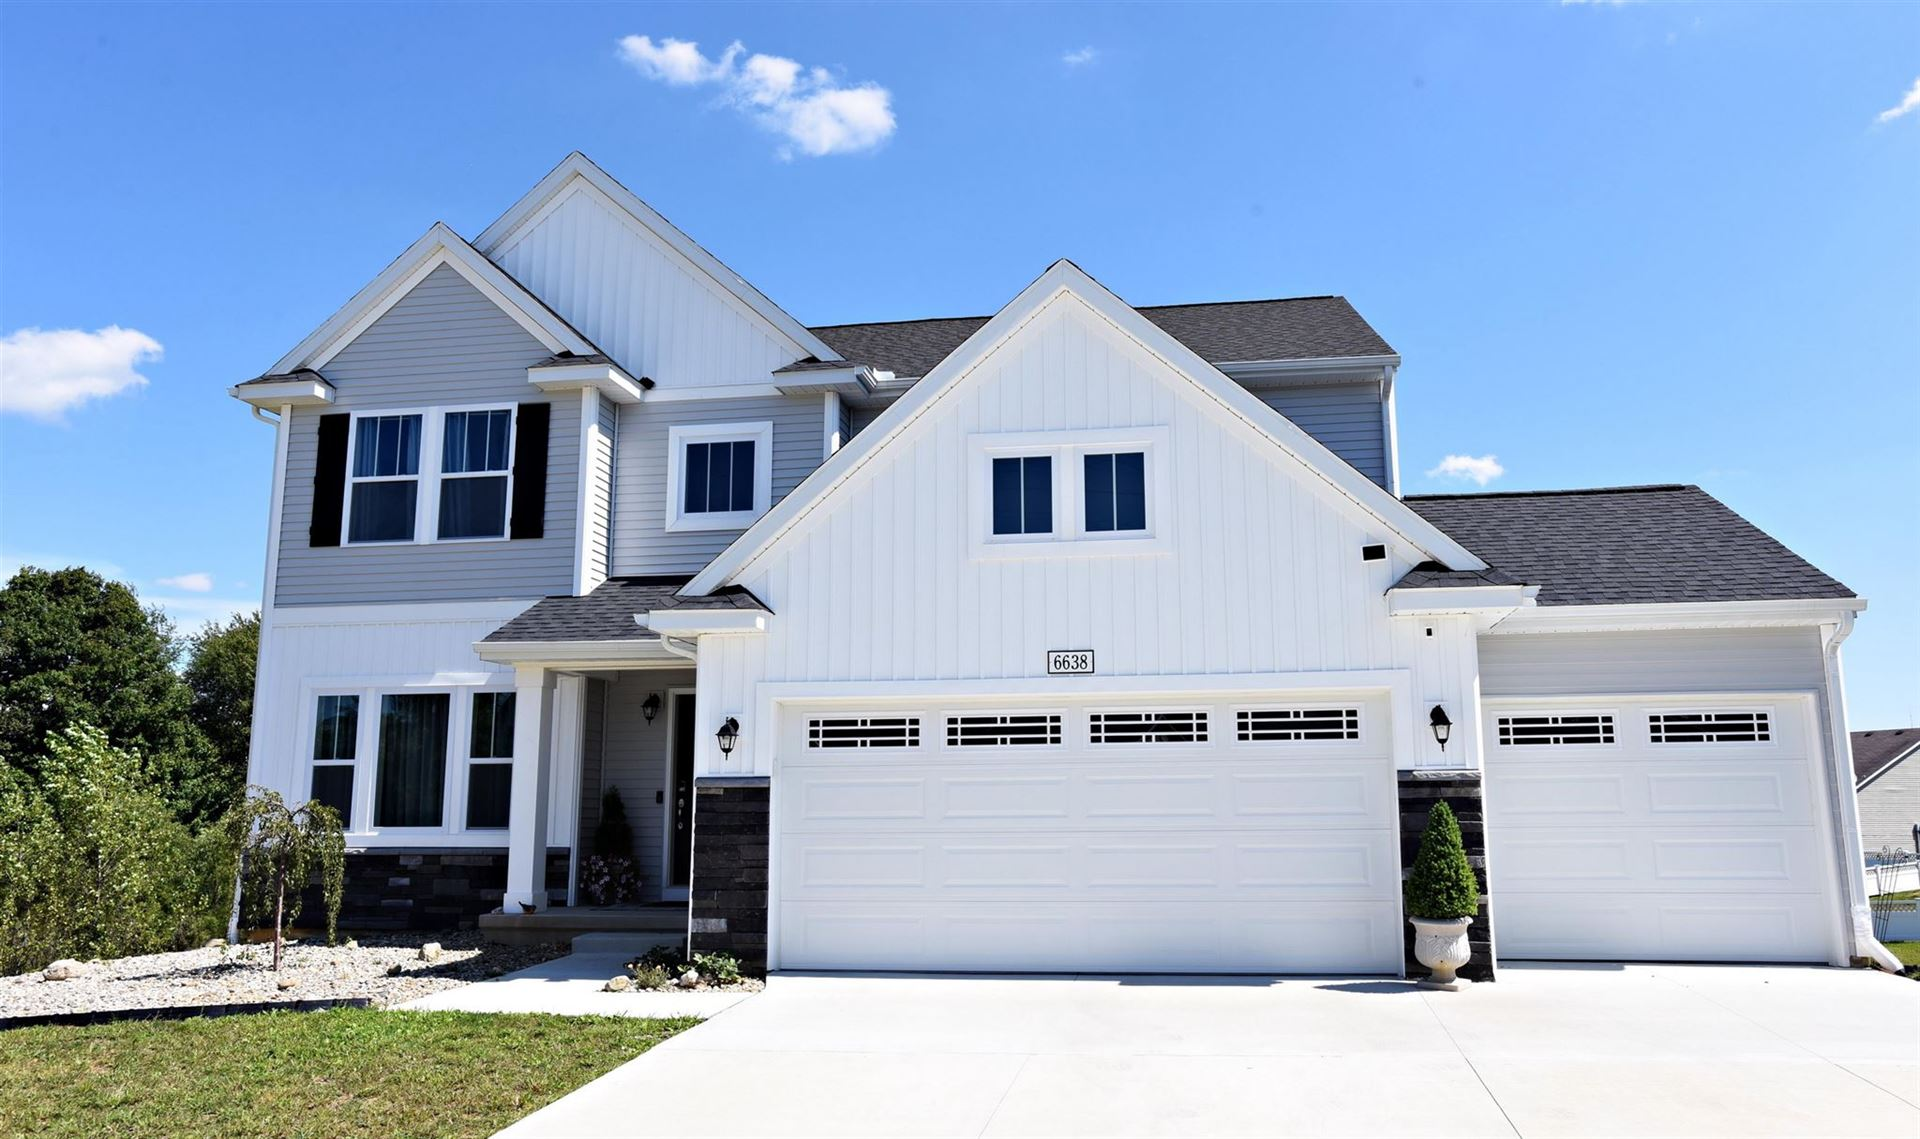 6638 Mackey Court, South Bend, IN 46614 - #: 202035437